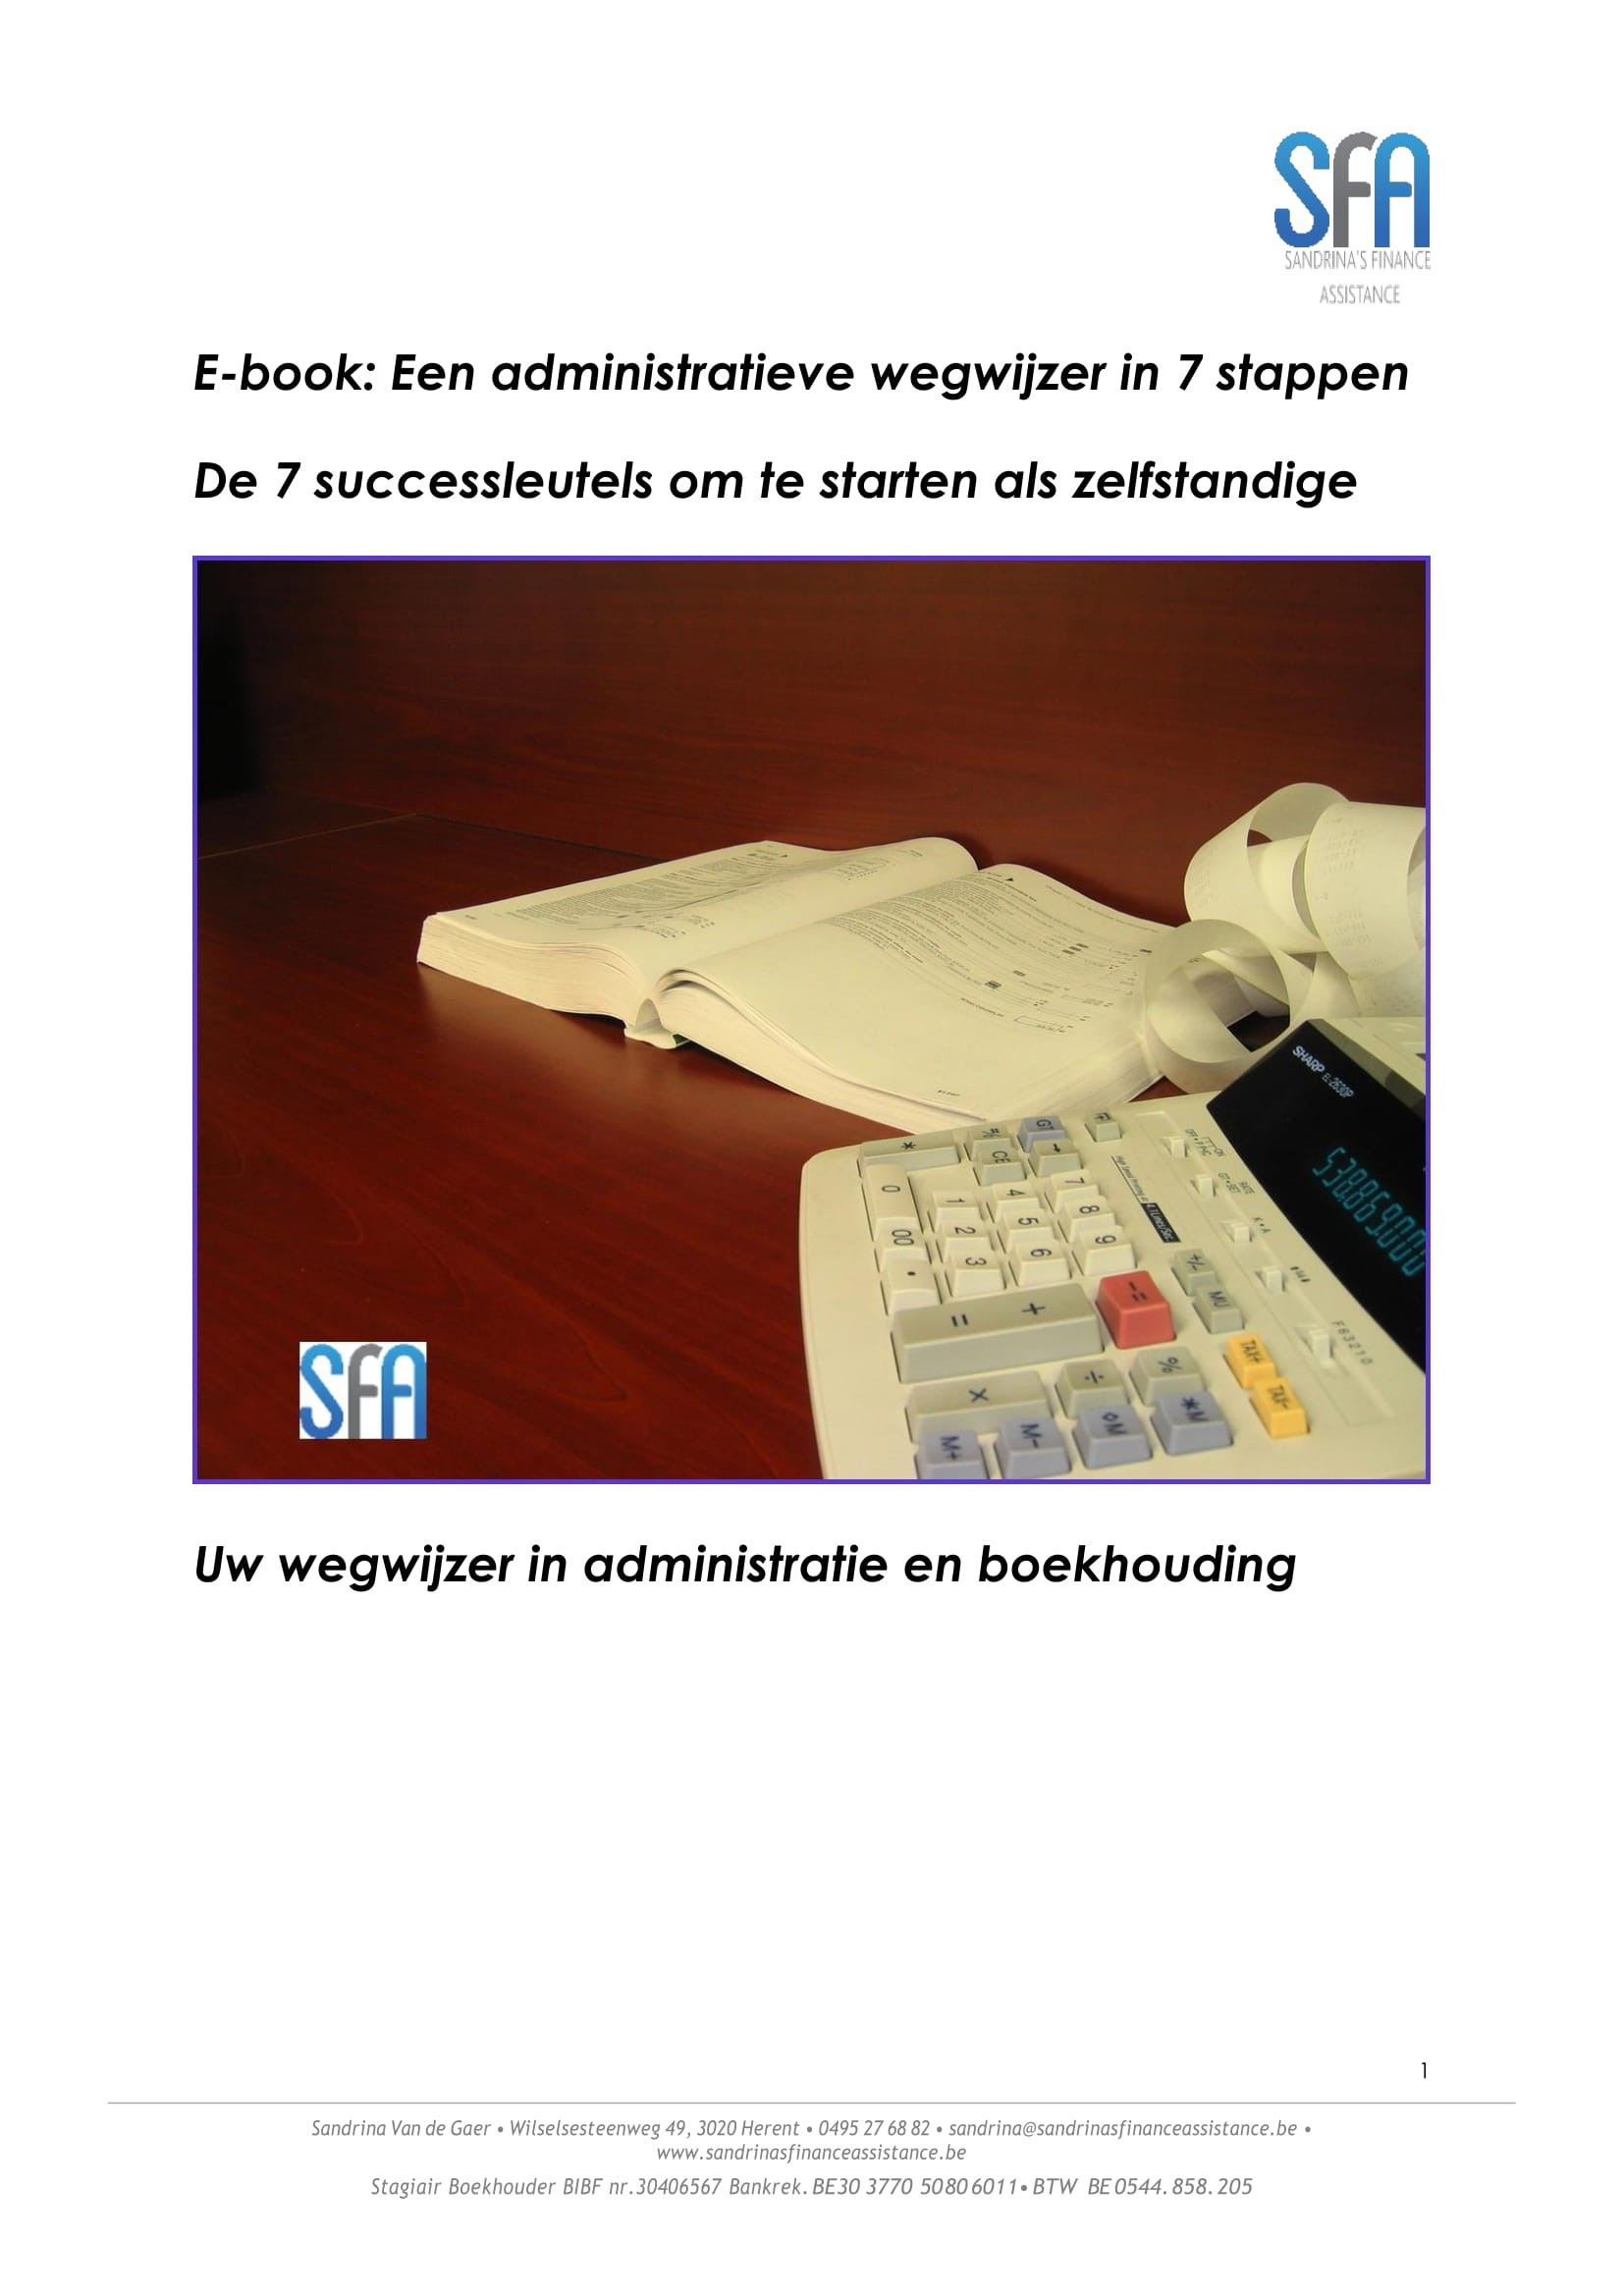 E-book_SFA.jpg - 278.65 kB